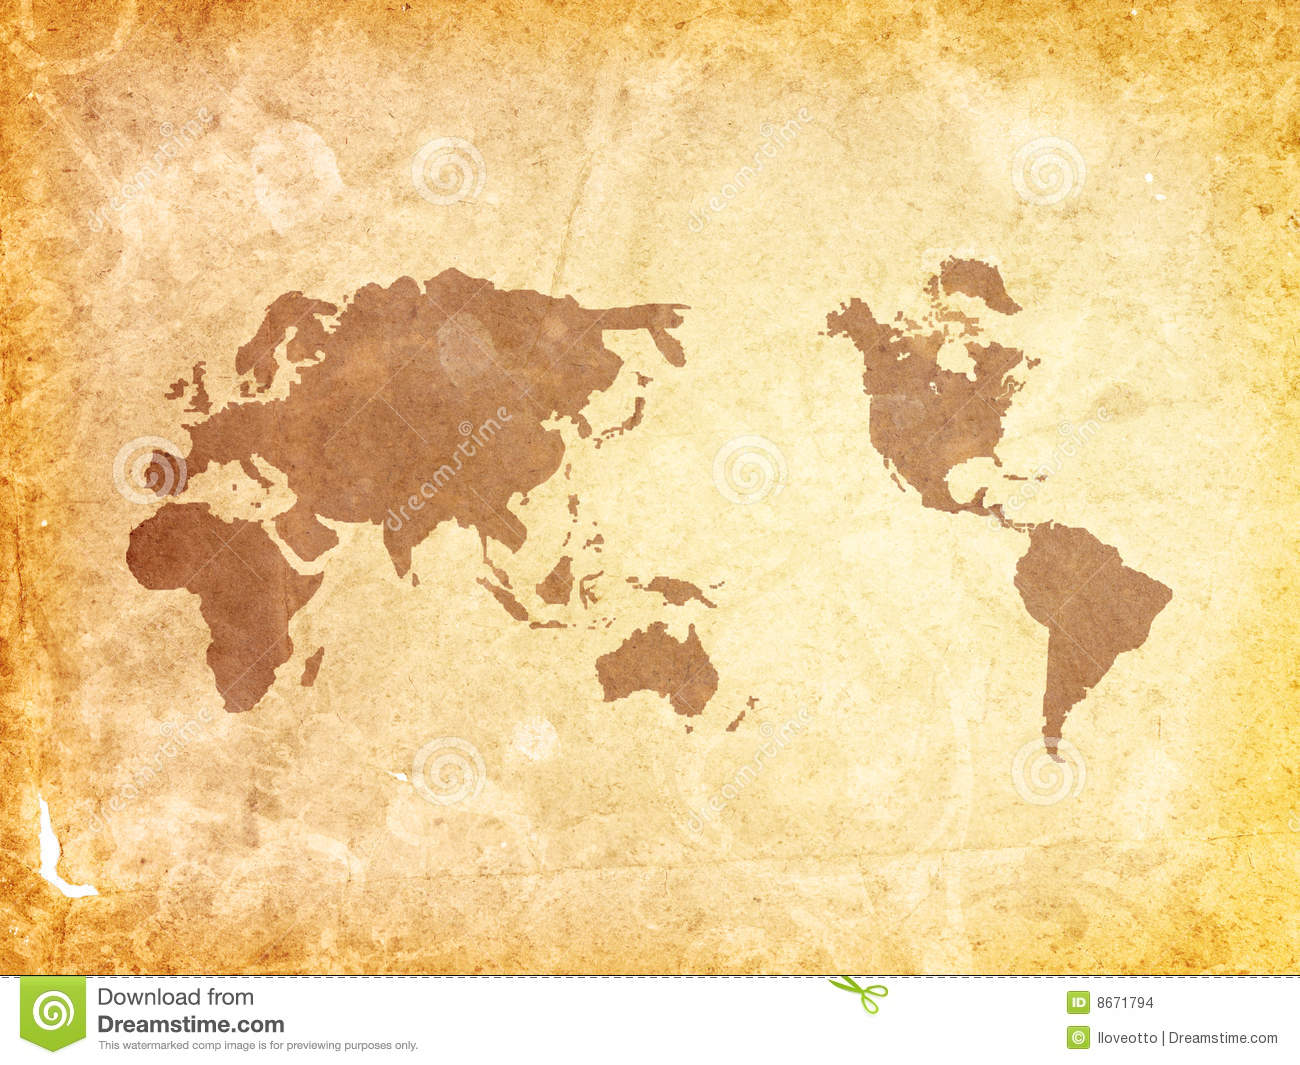 Old fashioned World map stock illustration. Illustration of